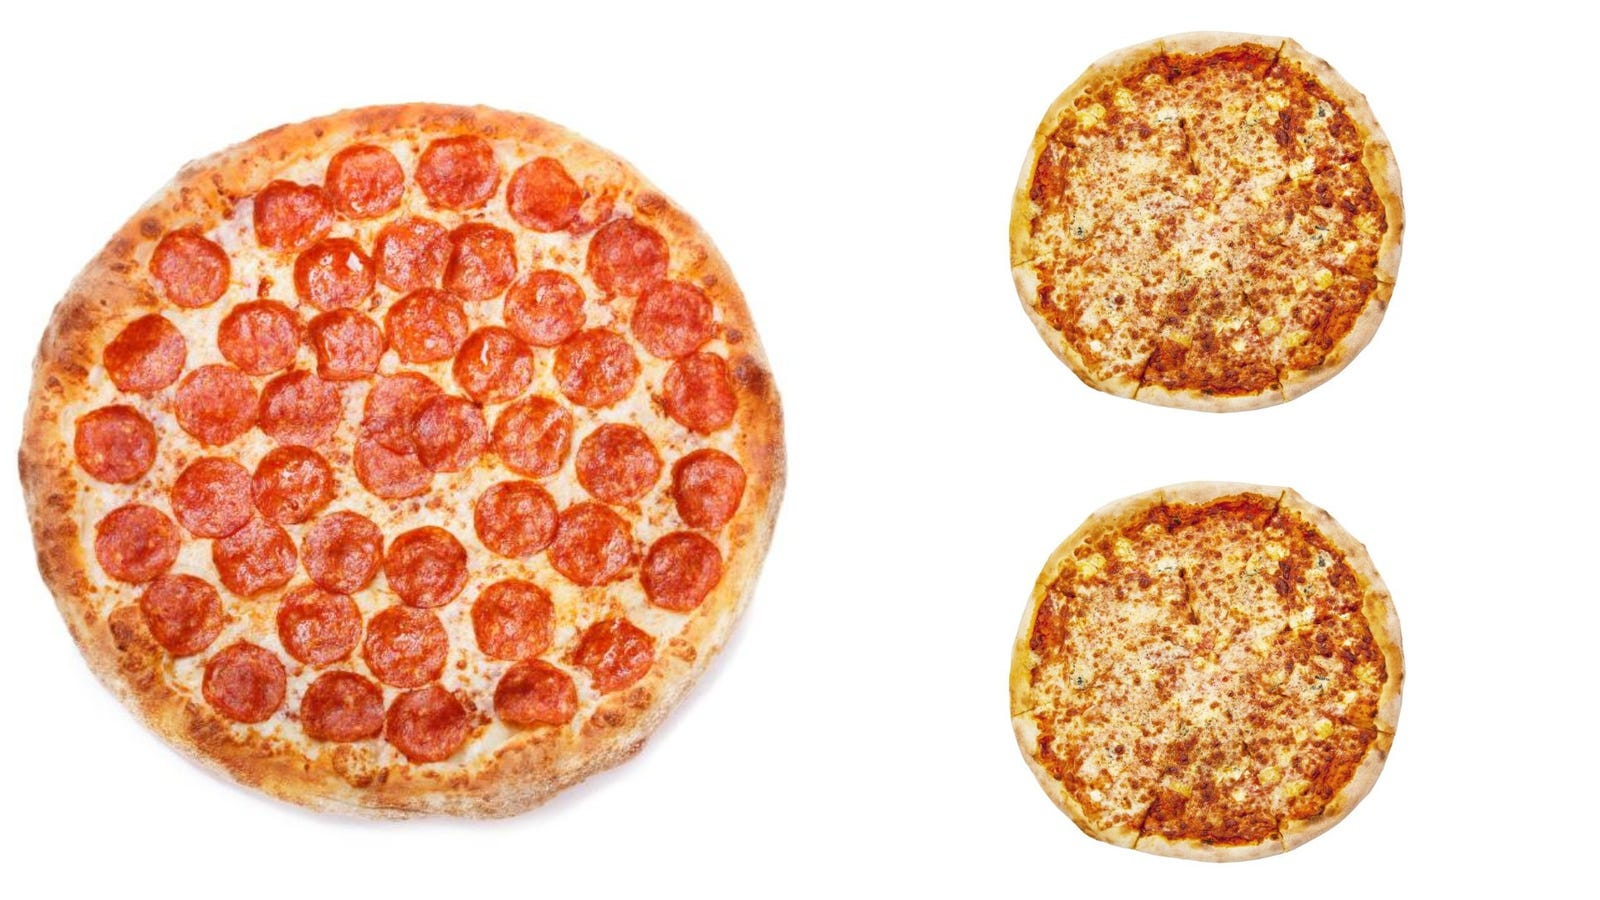 A large pizza contains more total pizza than 2 small ones, says math